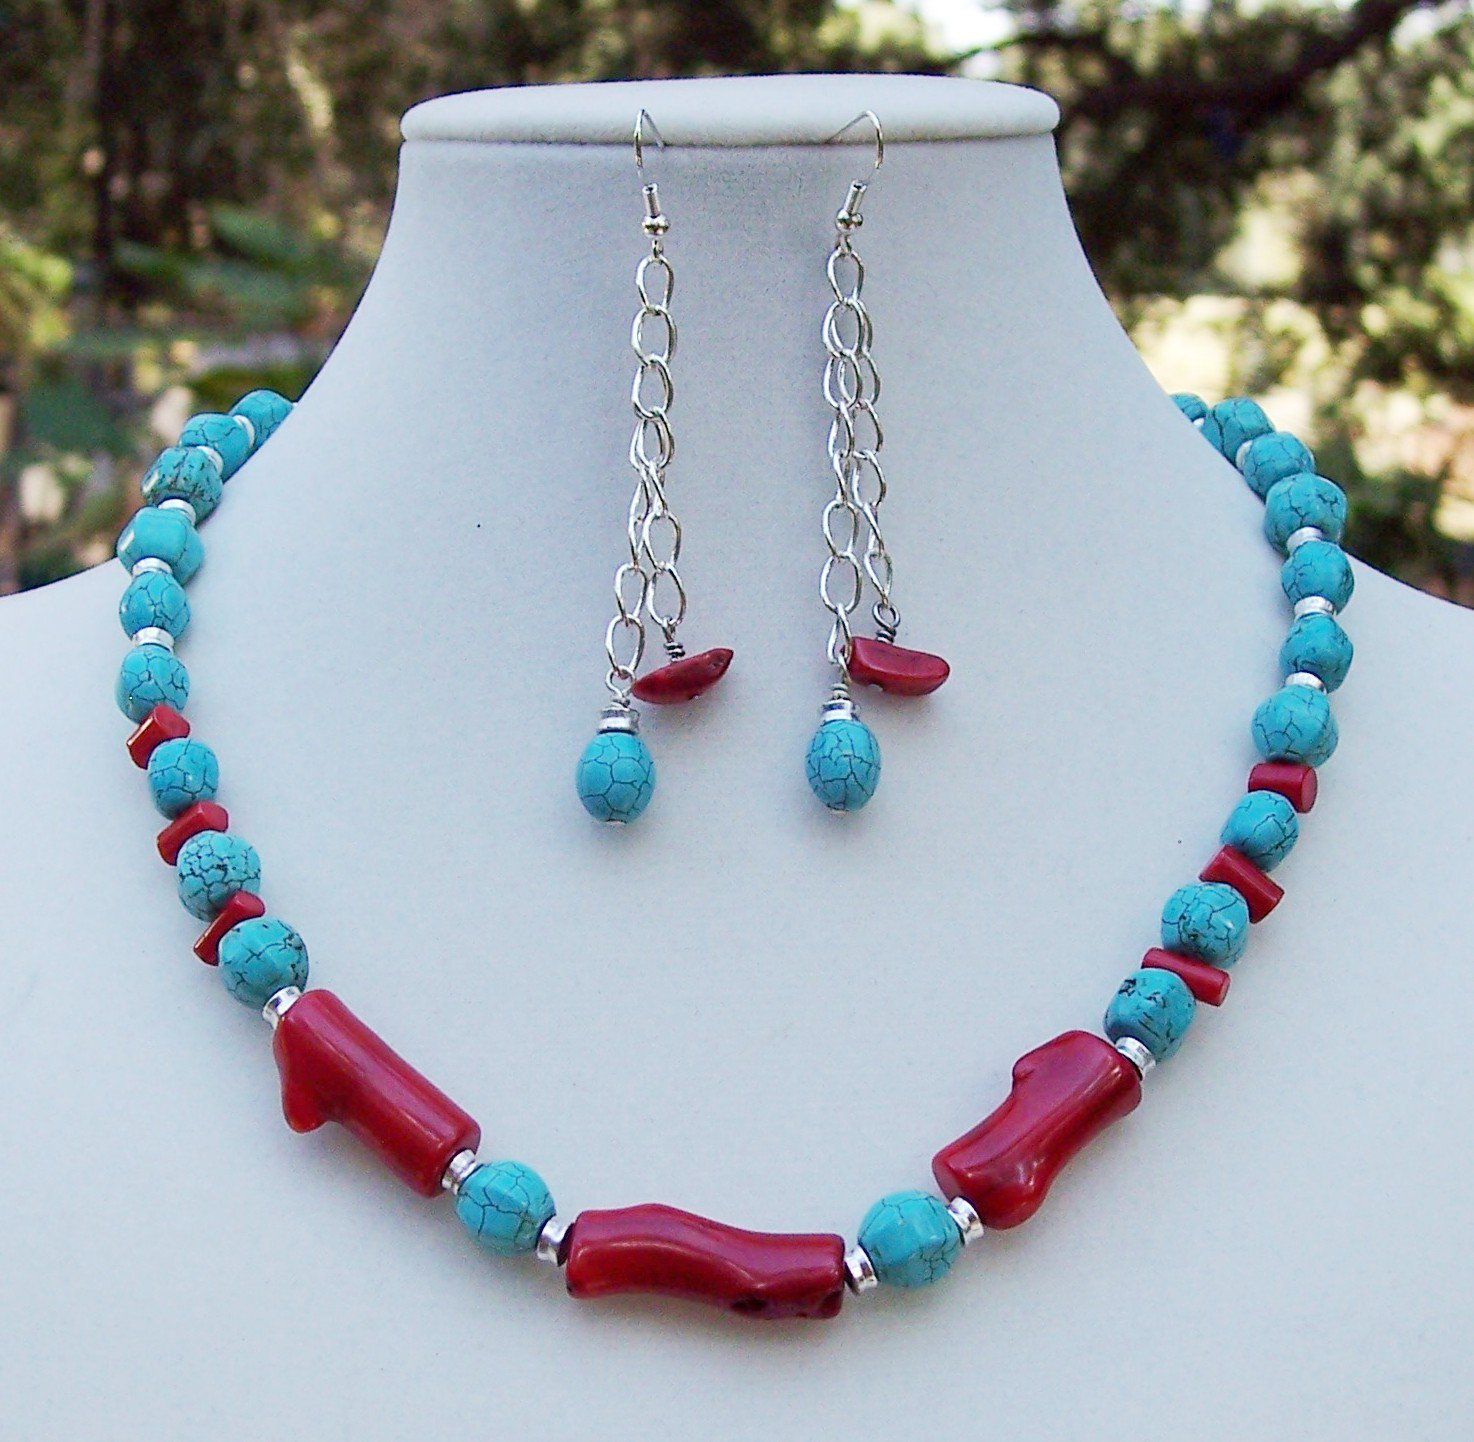 bamboo coral turquoise necklace earring set handmade